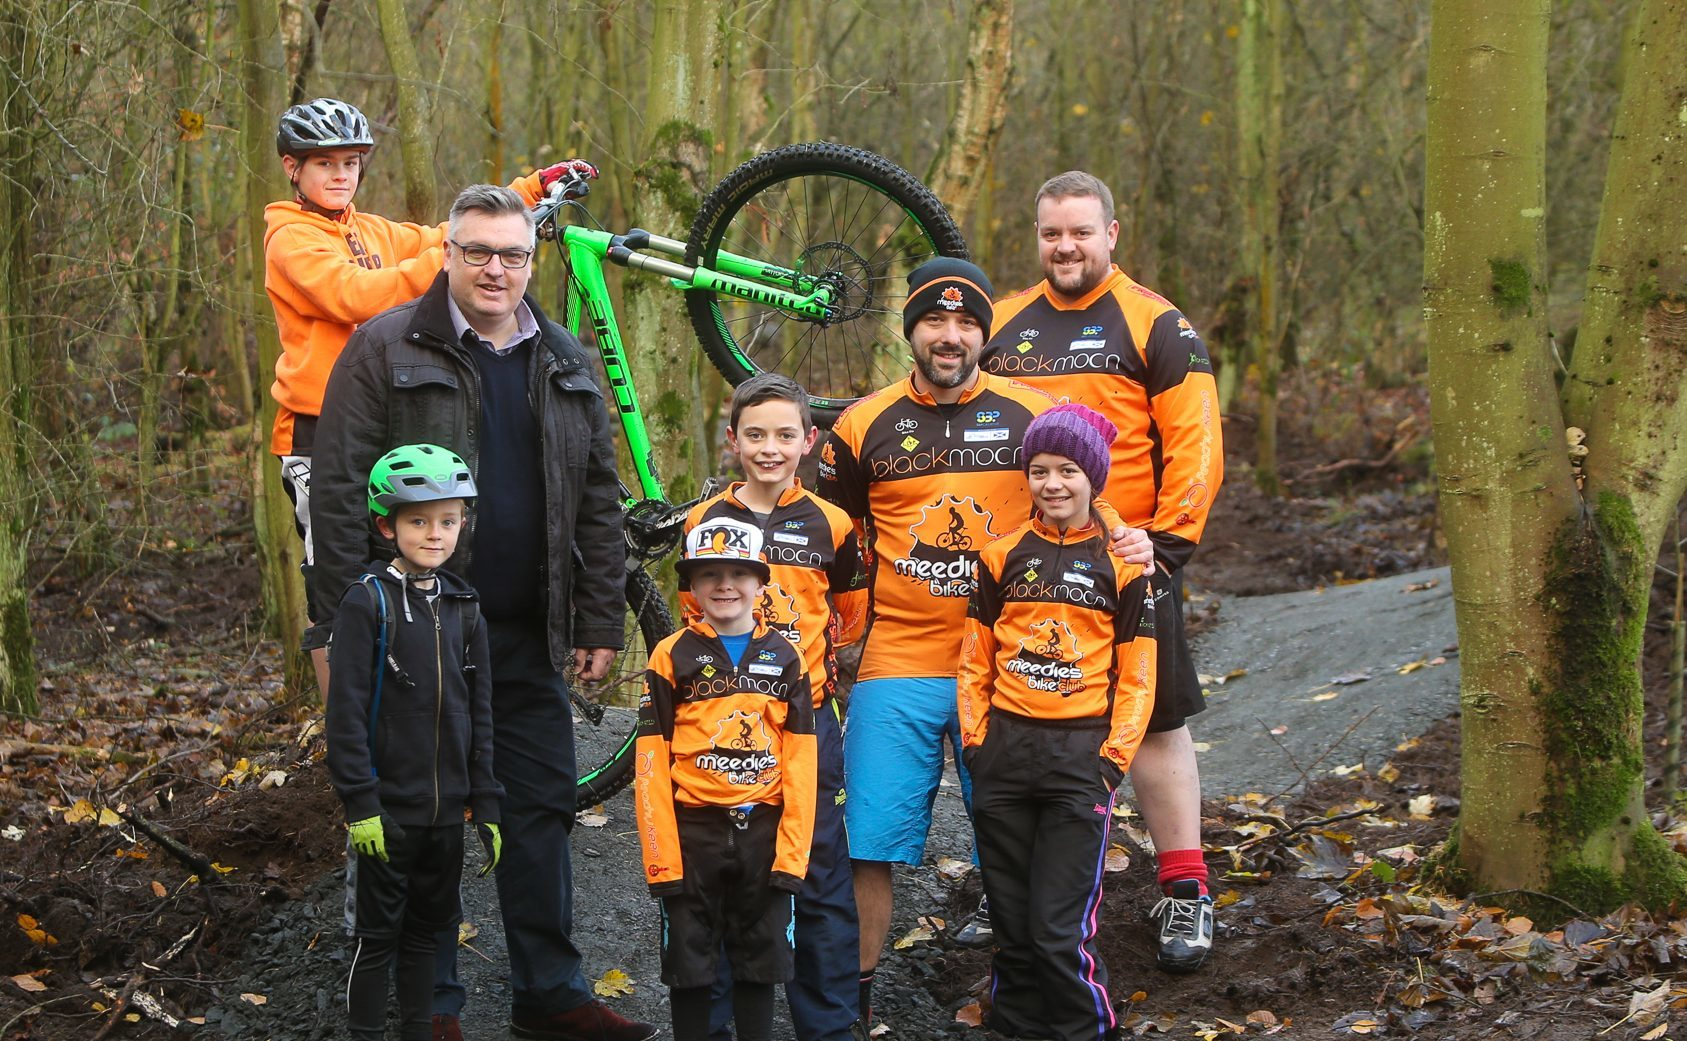 Councillor Mark Hood meets some of the bike trail cyclists